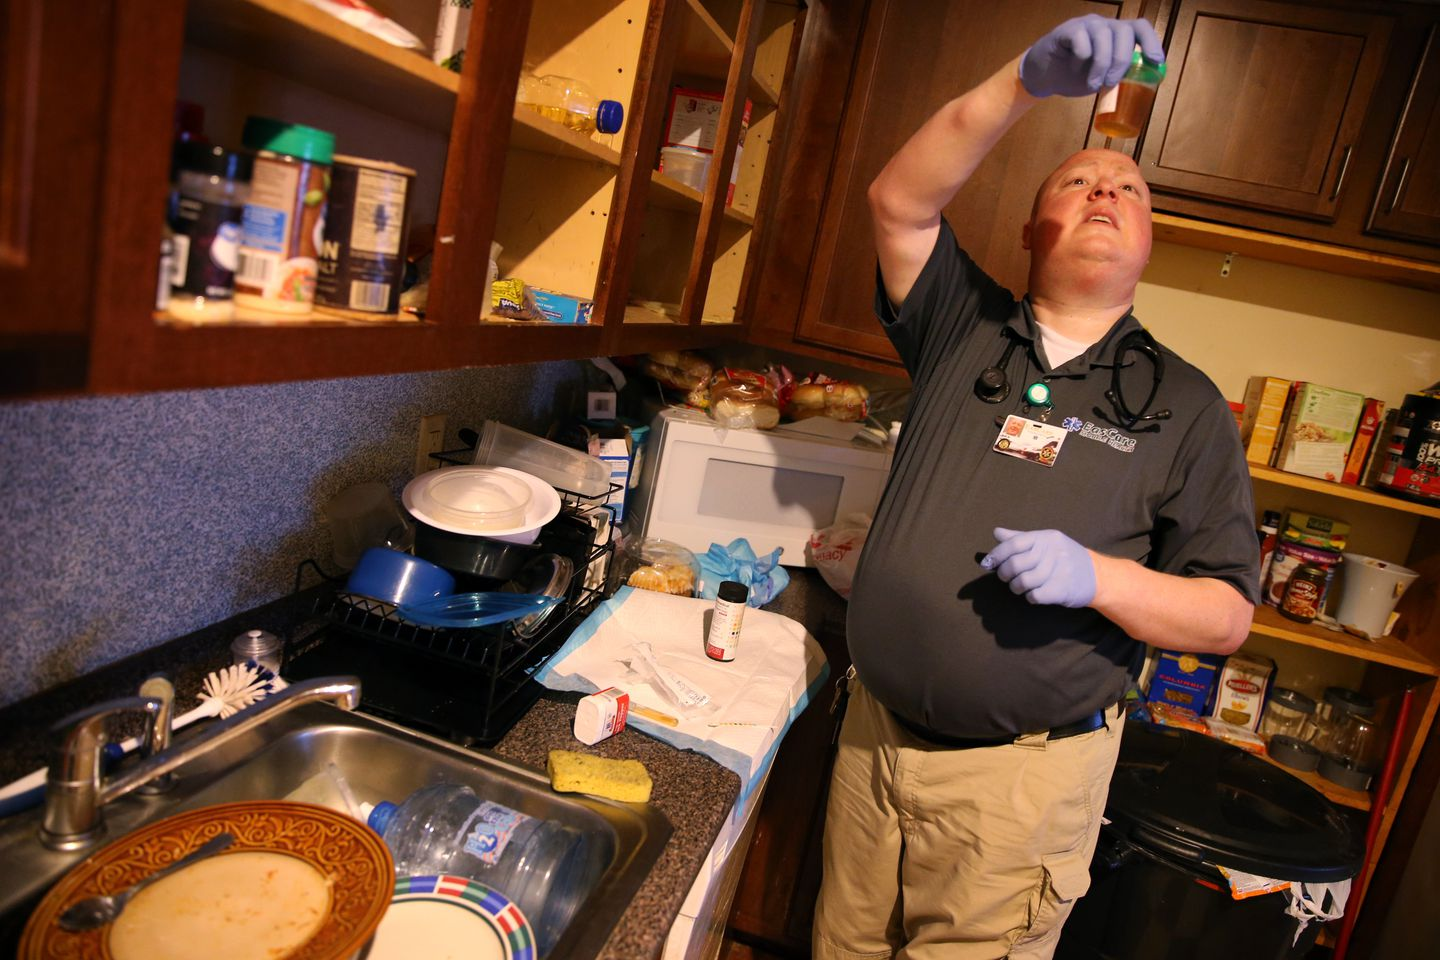 Paramedic Matthew Michaud examined a urine sample during a home visit.